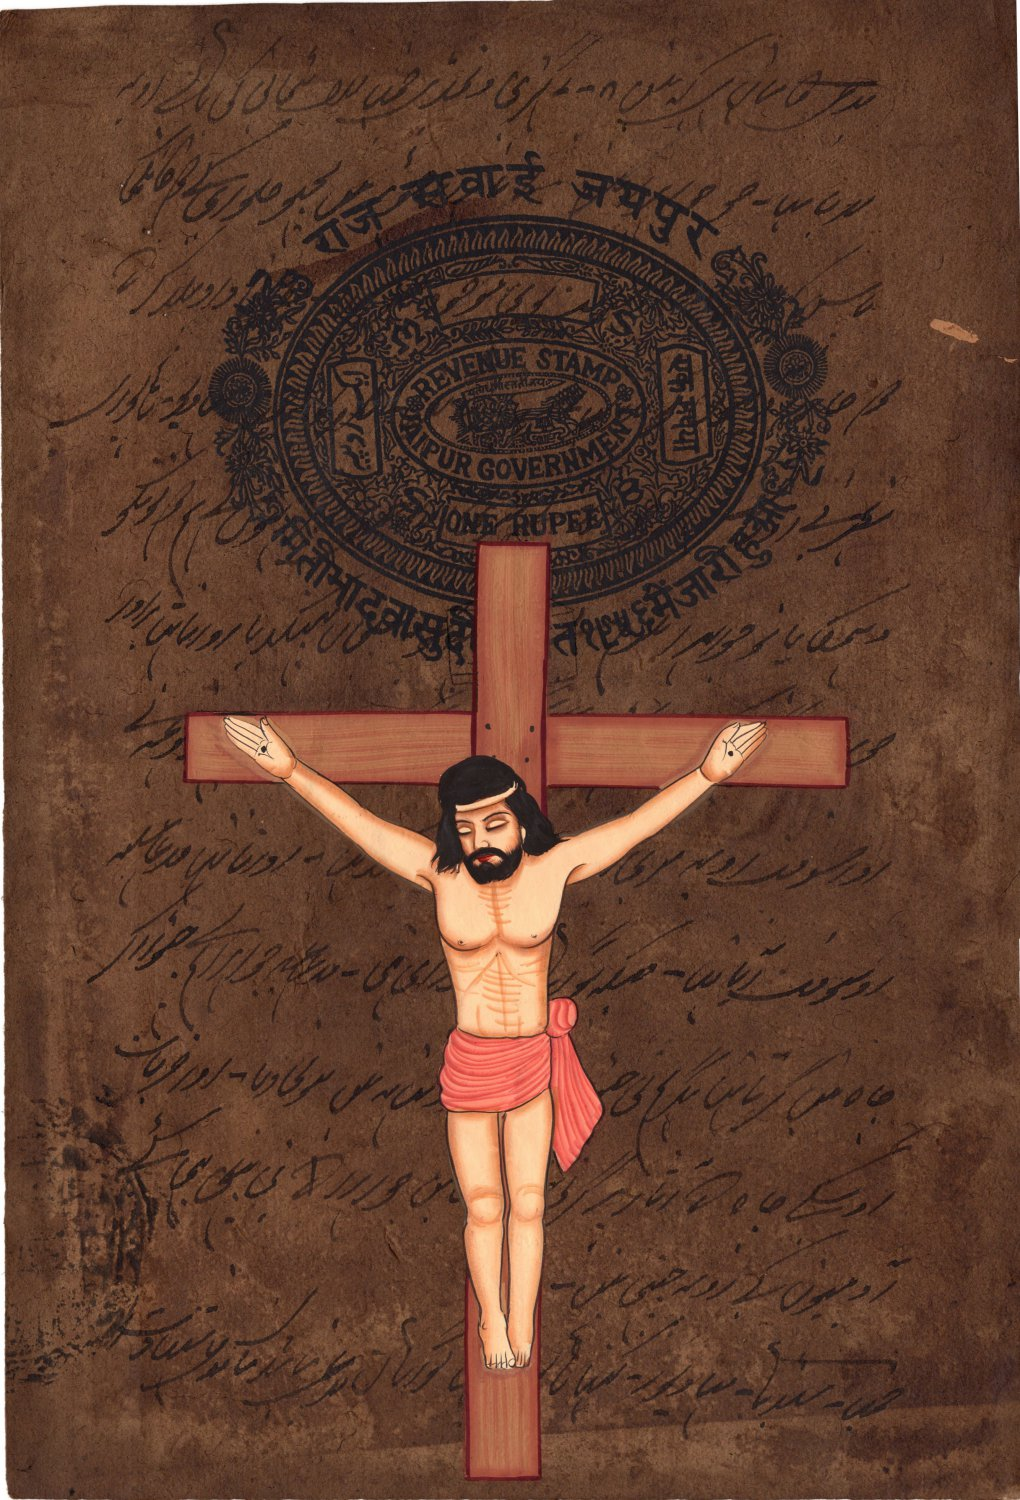 a religious essay on jesus christ Christianity was founded by jesus christ  jesuits - jesuits research papers discuss the members of the society of jesus, a religious organization within the.